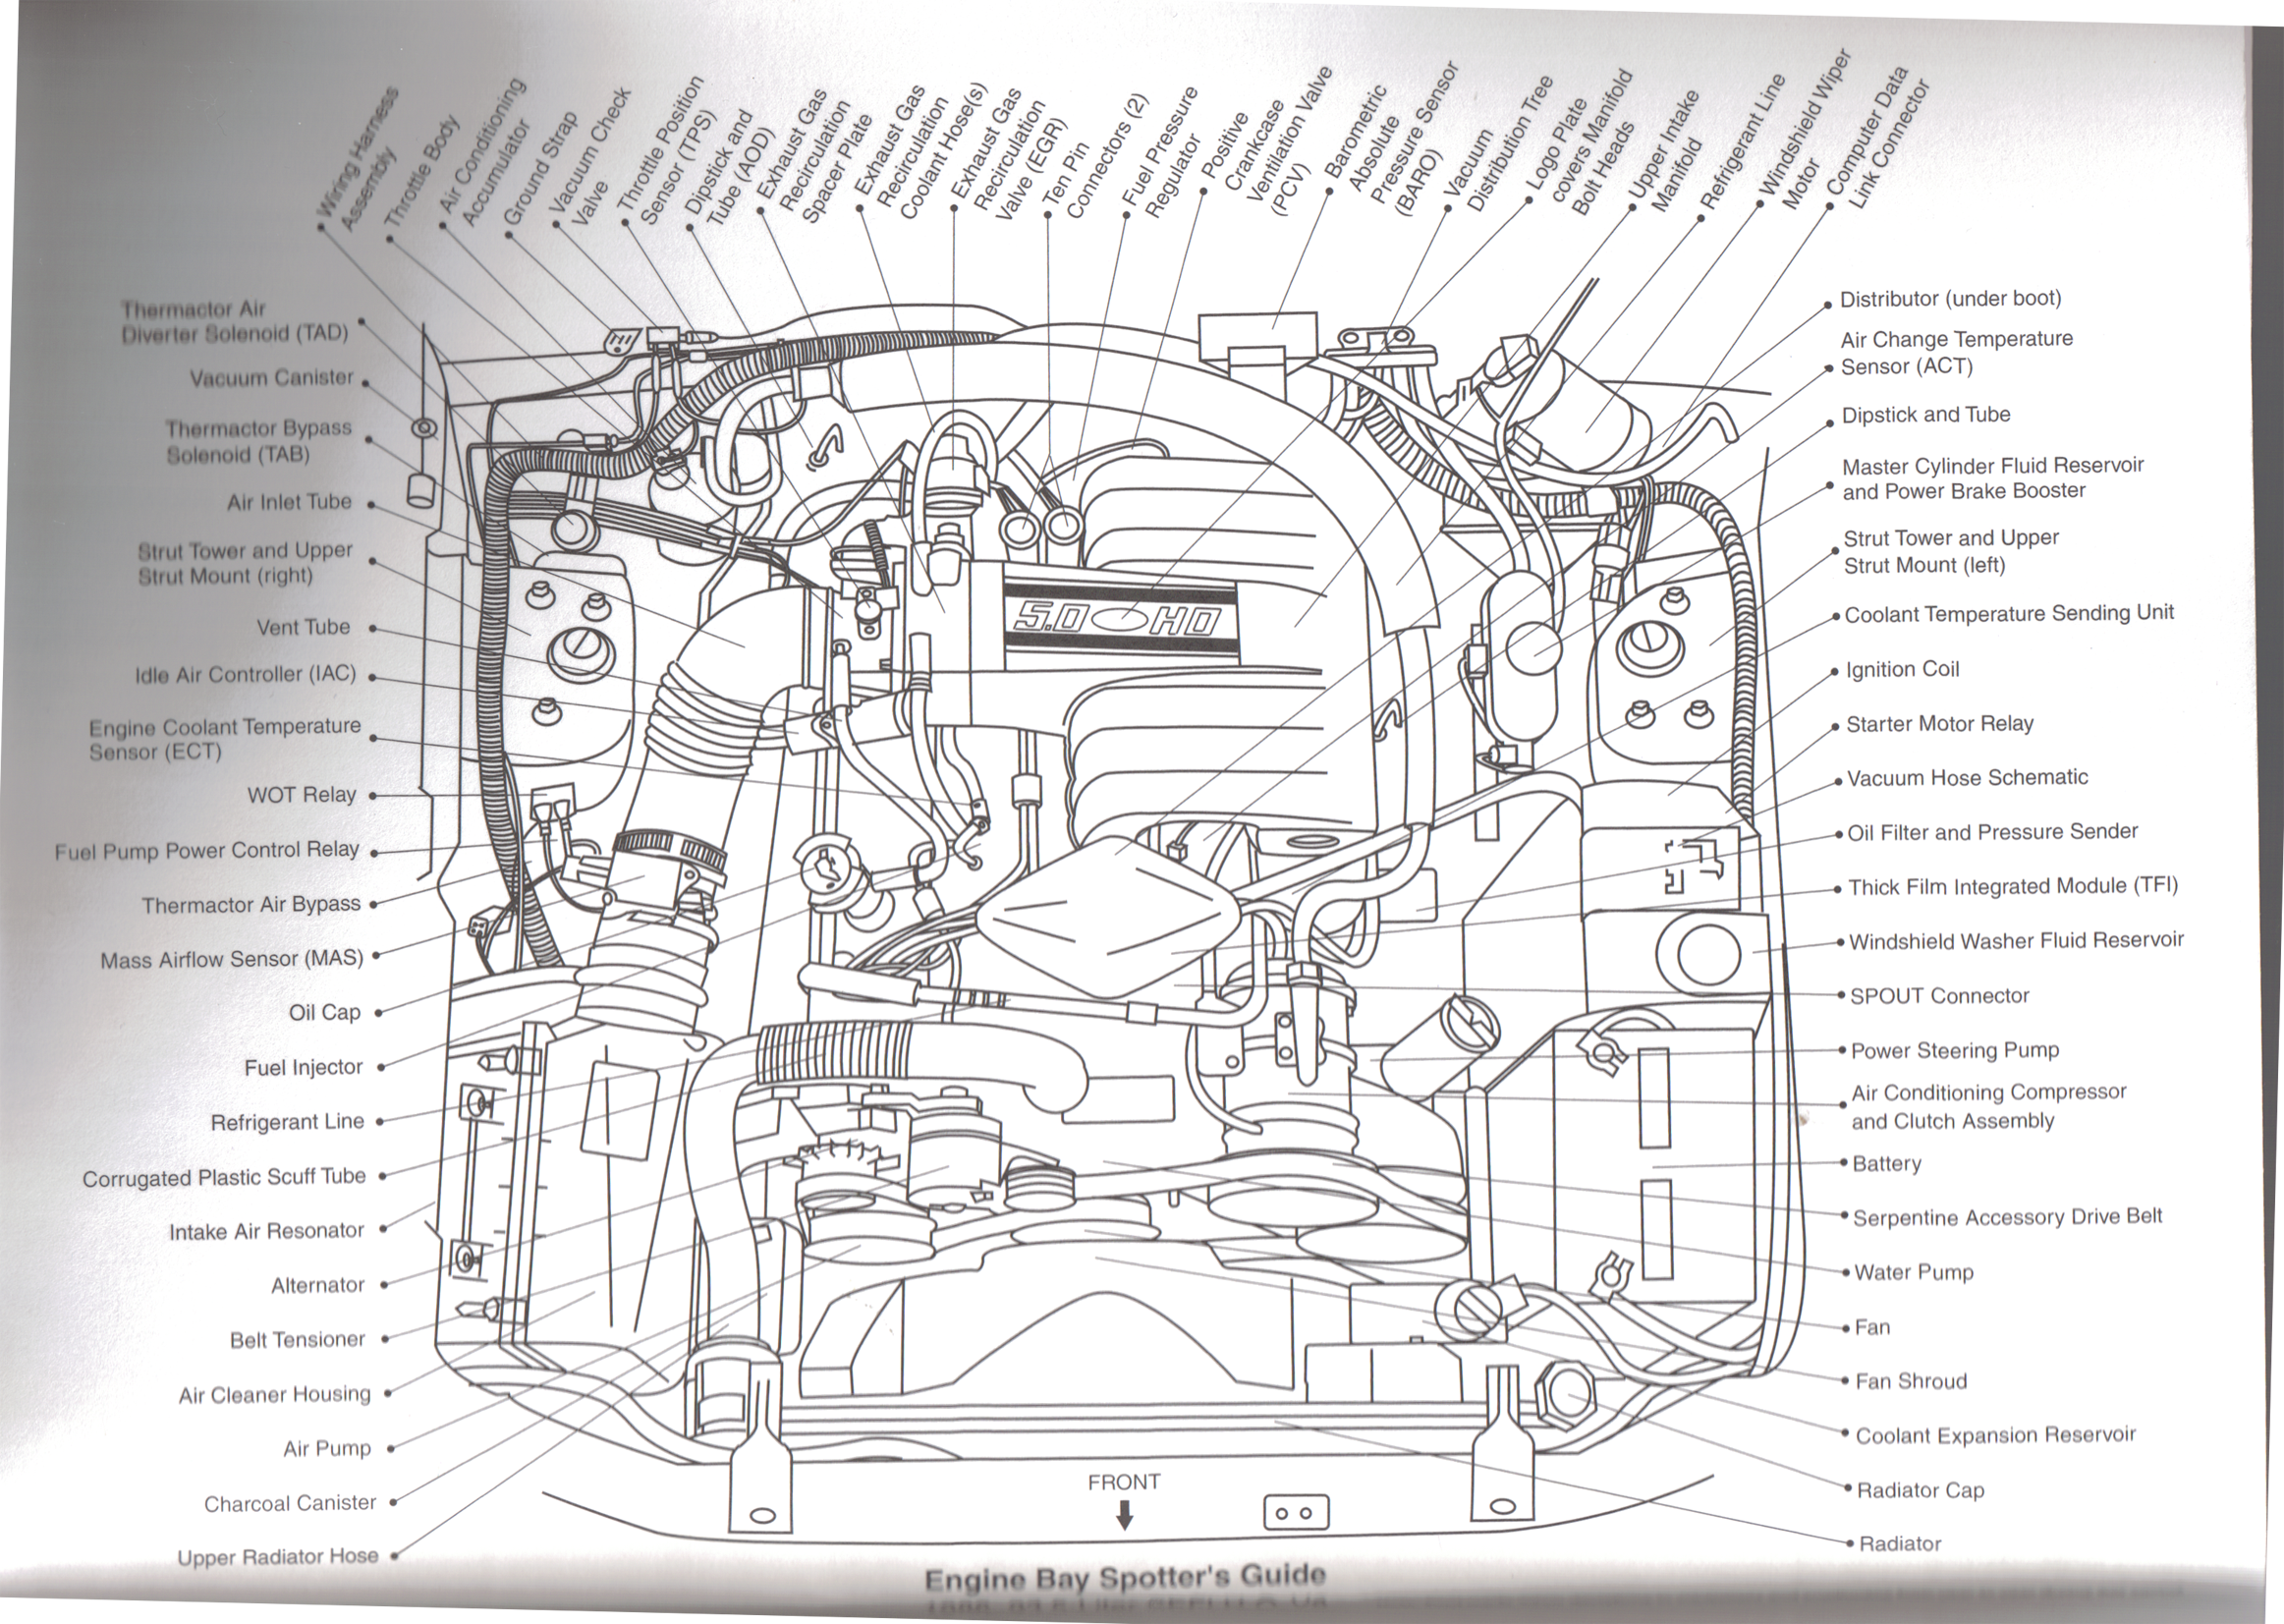 1999 Ford E150 Fuse Diagram Wiring Library E 150 Everything You Need To Know About 1979 1993 Foxbody Mustangs Rh Americanmuscle Com 88 1987 302 Efi Schematics